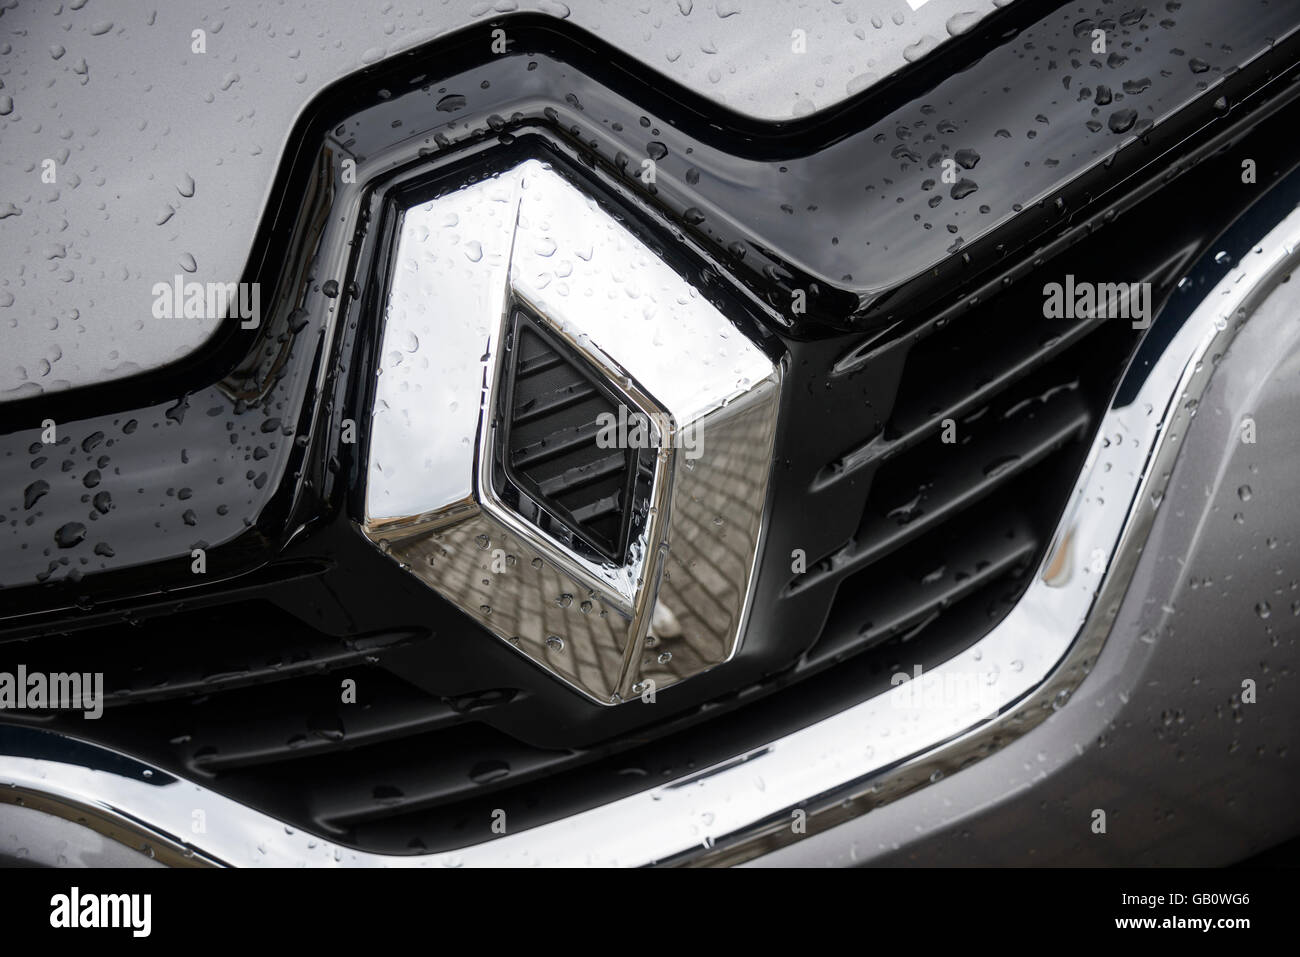 Renault Badge Stock Photos Renault Badge Stock Images Alamy